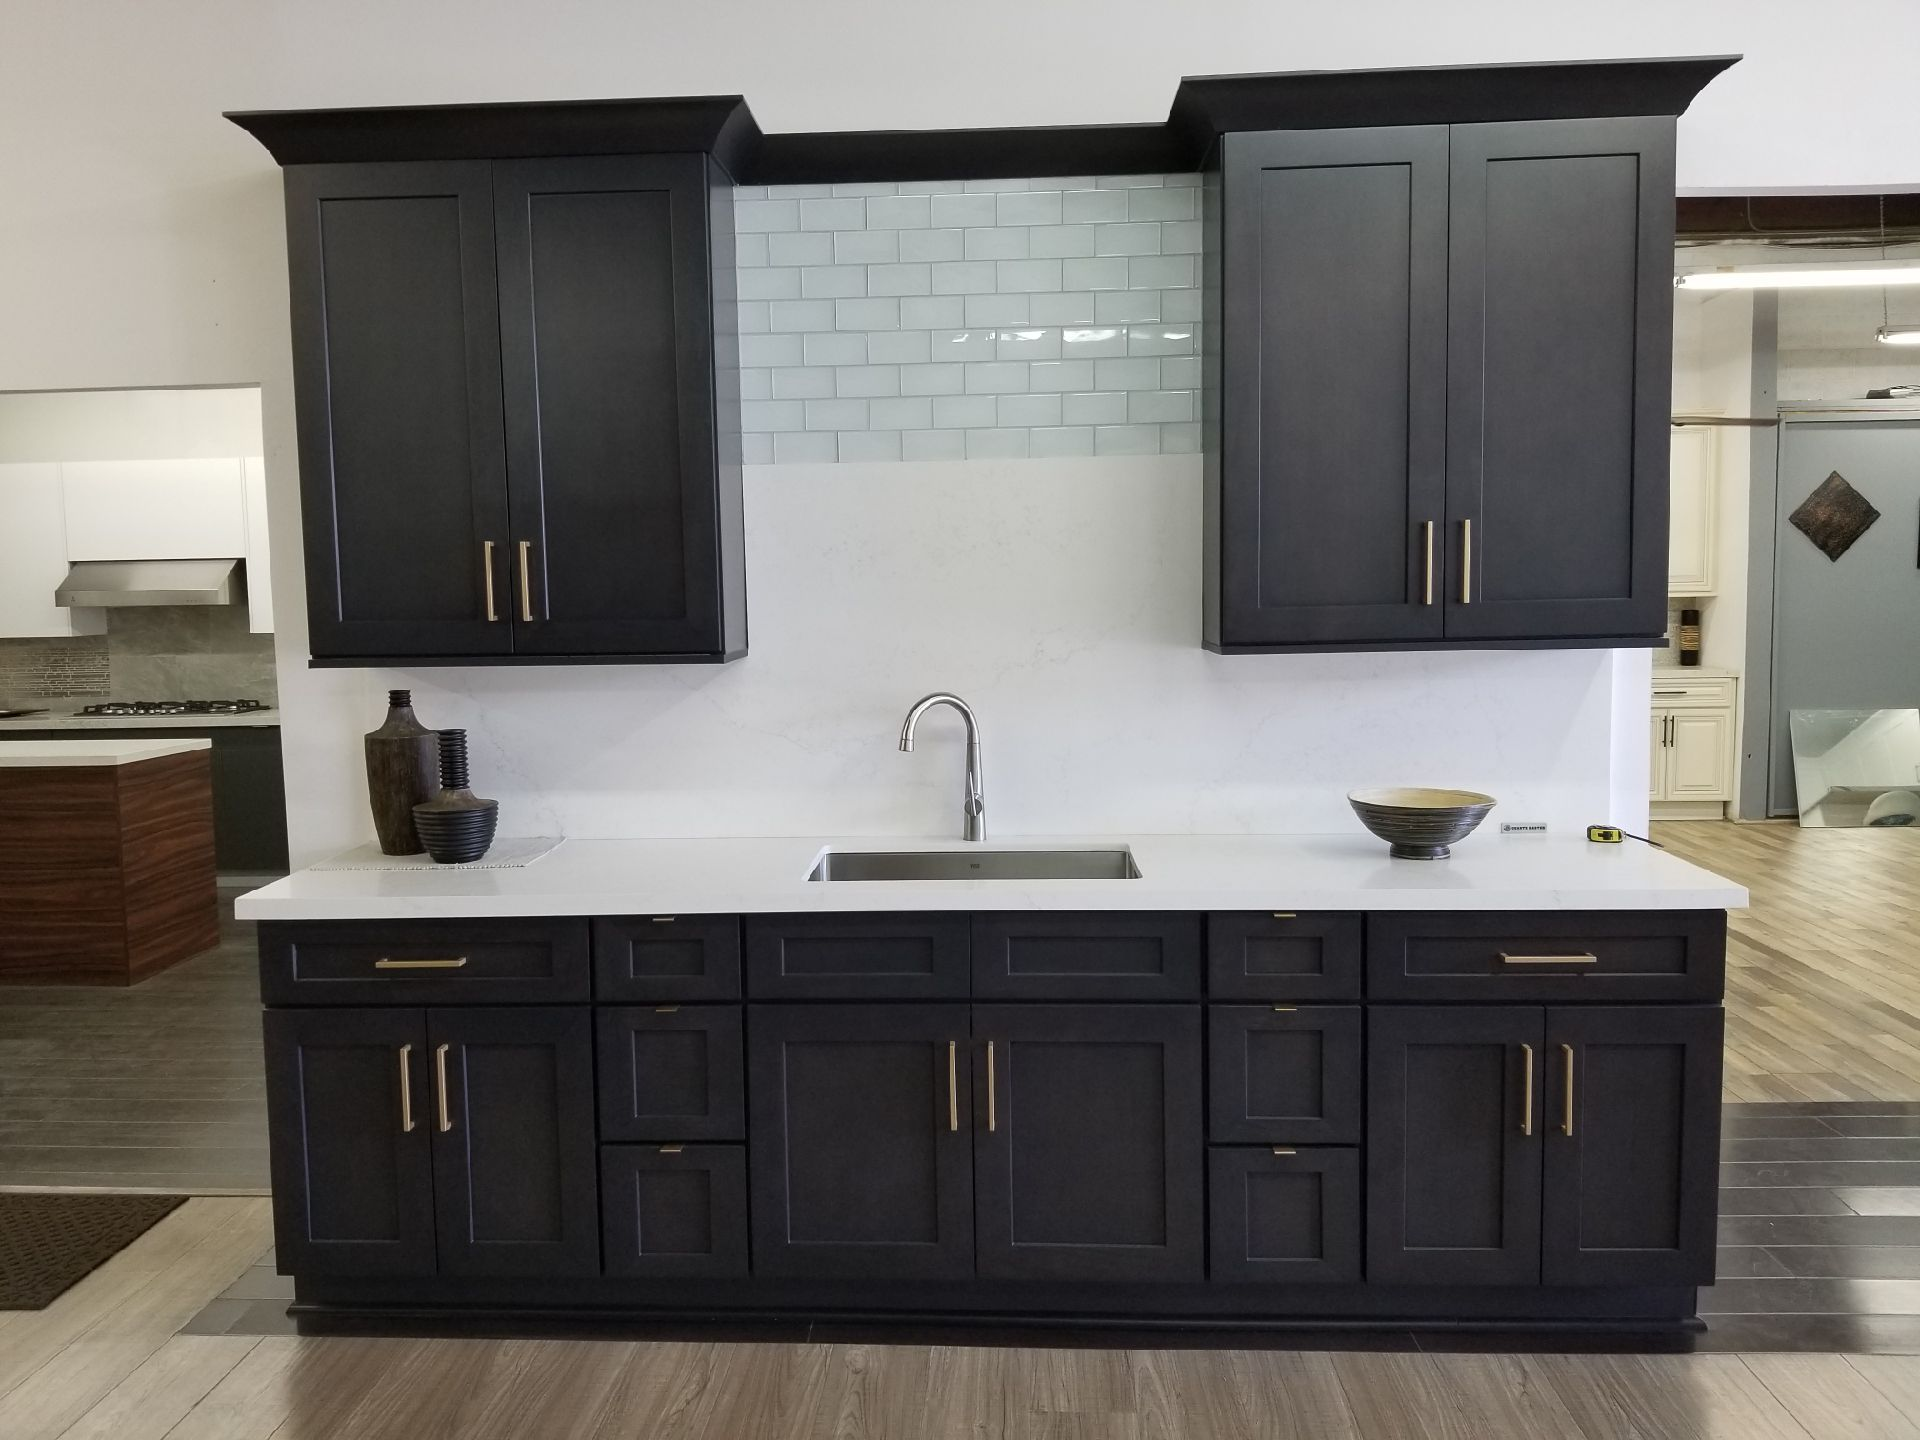 Best Ash Grey Shaker With Gold Handles In 2019 Kitchen 640 x 480